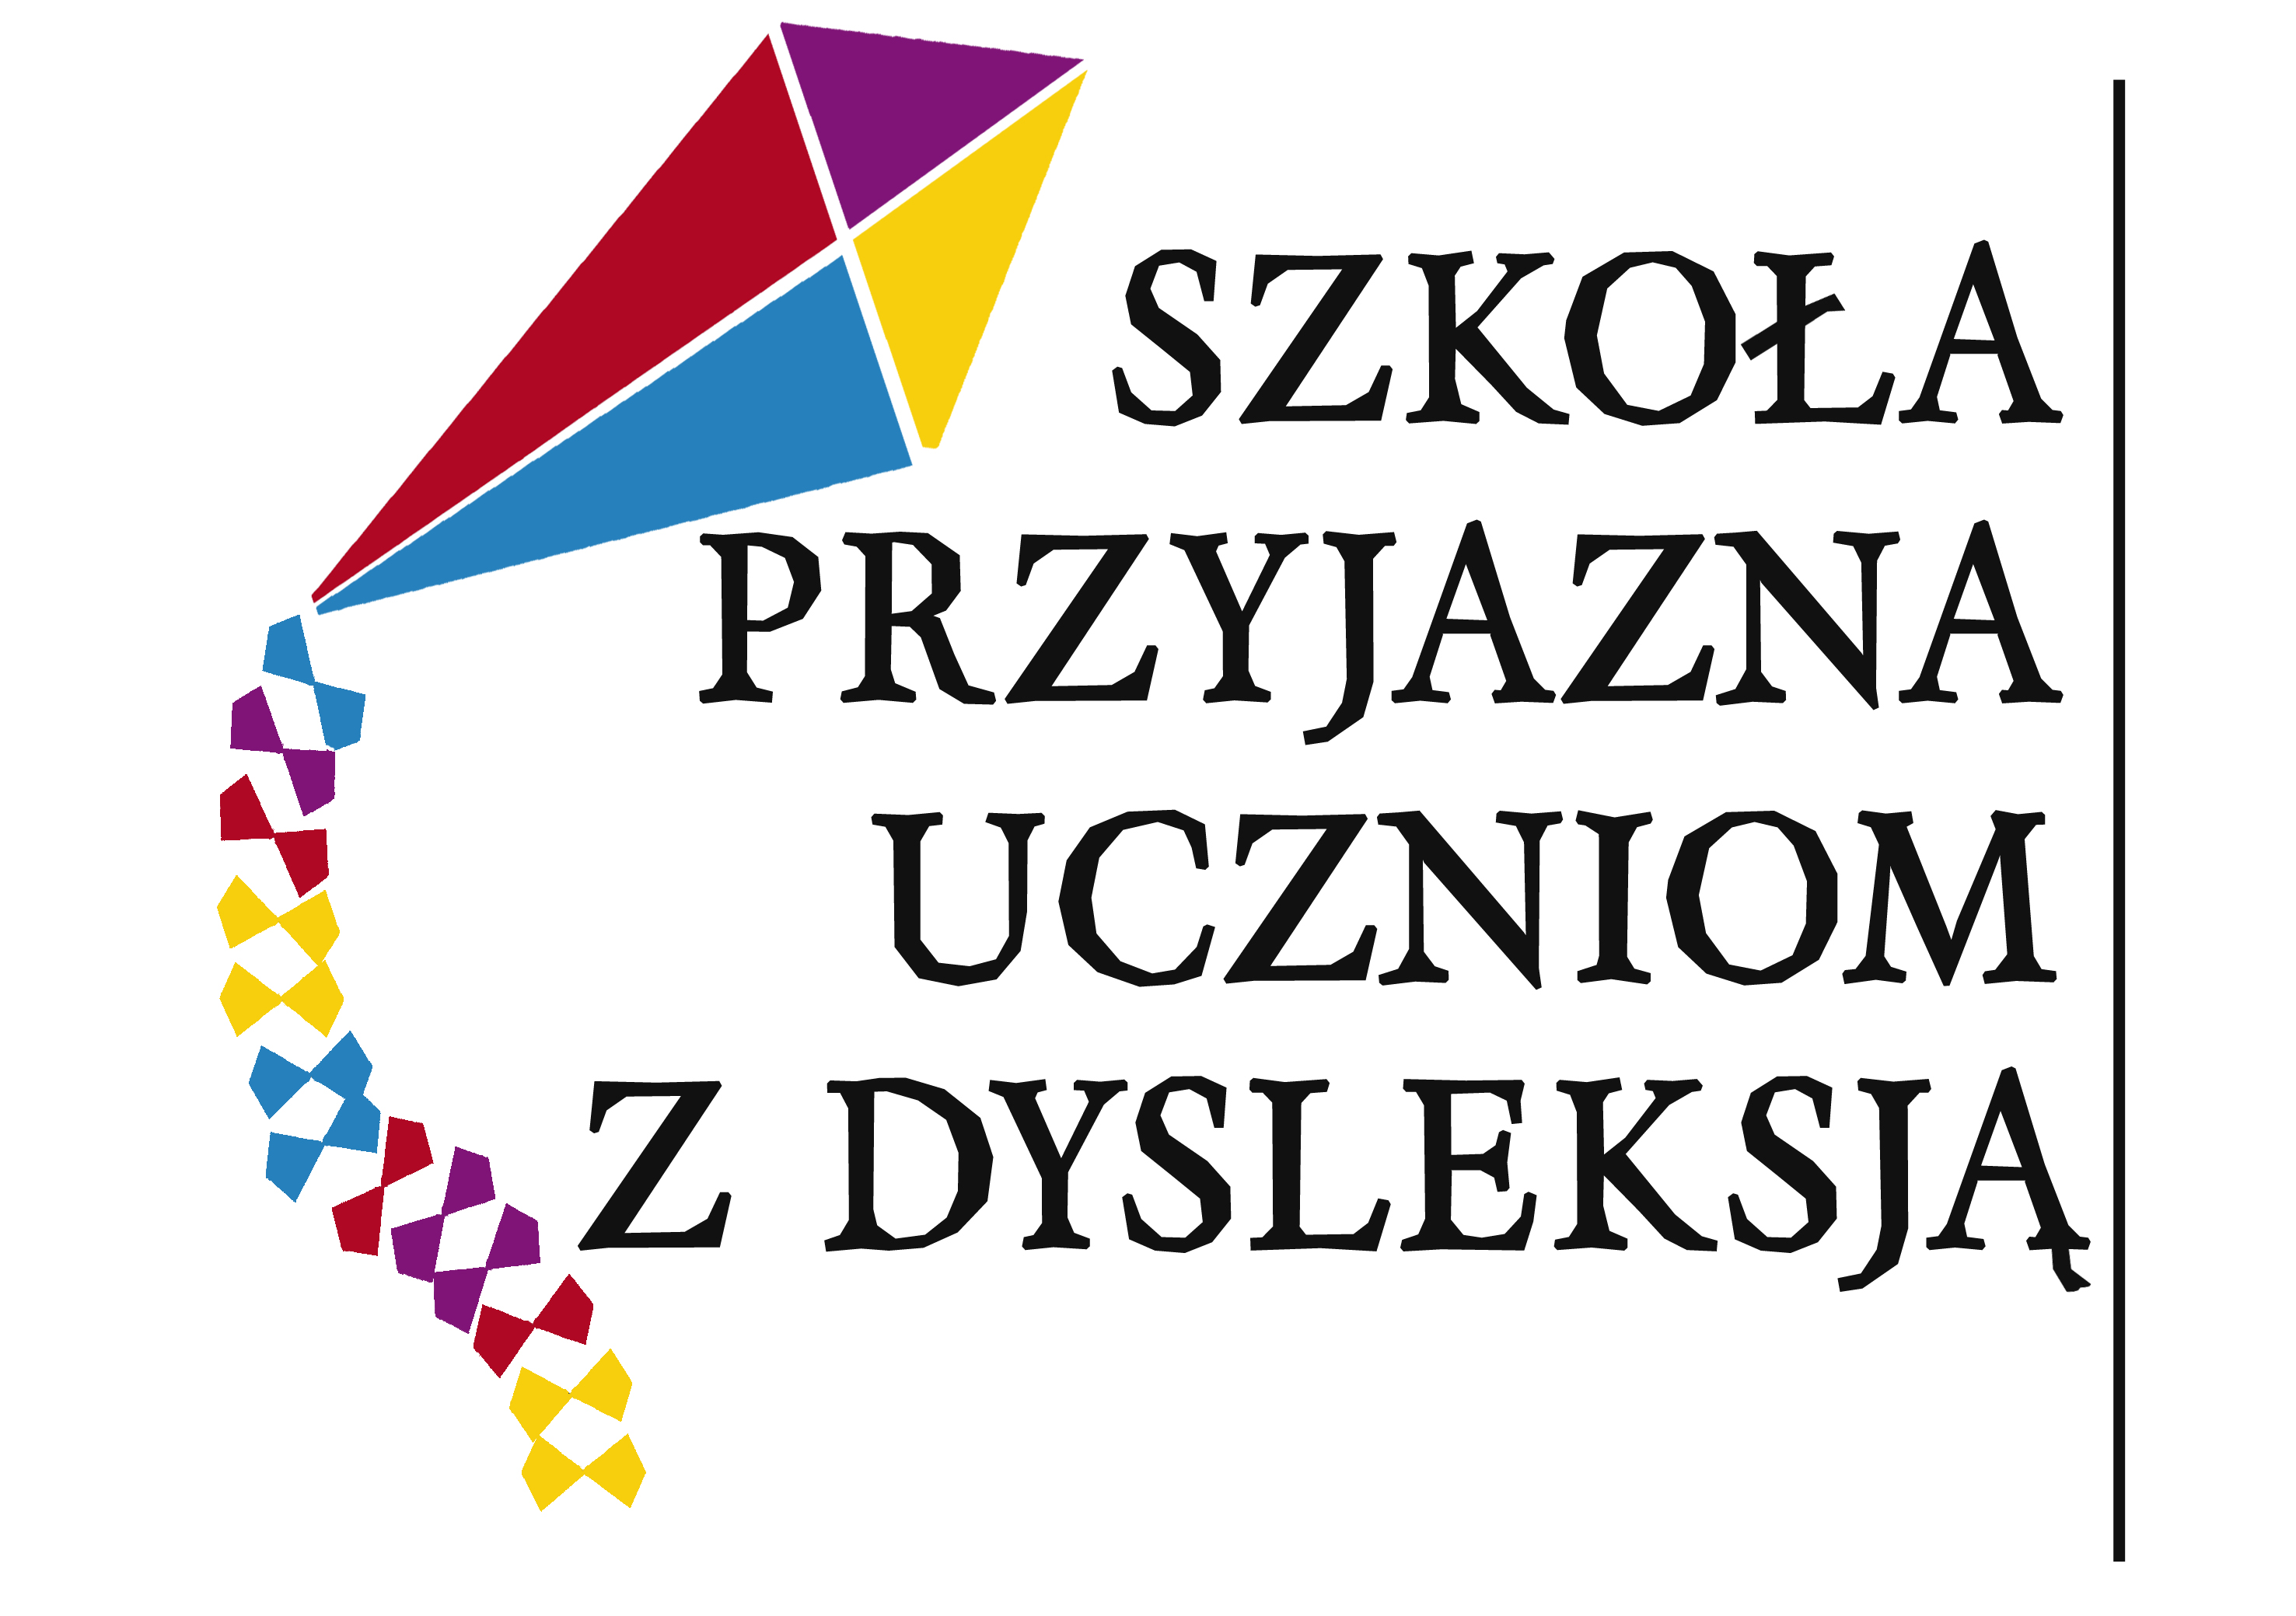 Szkoła przyjazna uczniom z dysleksją